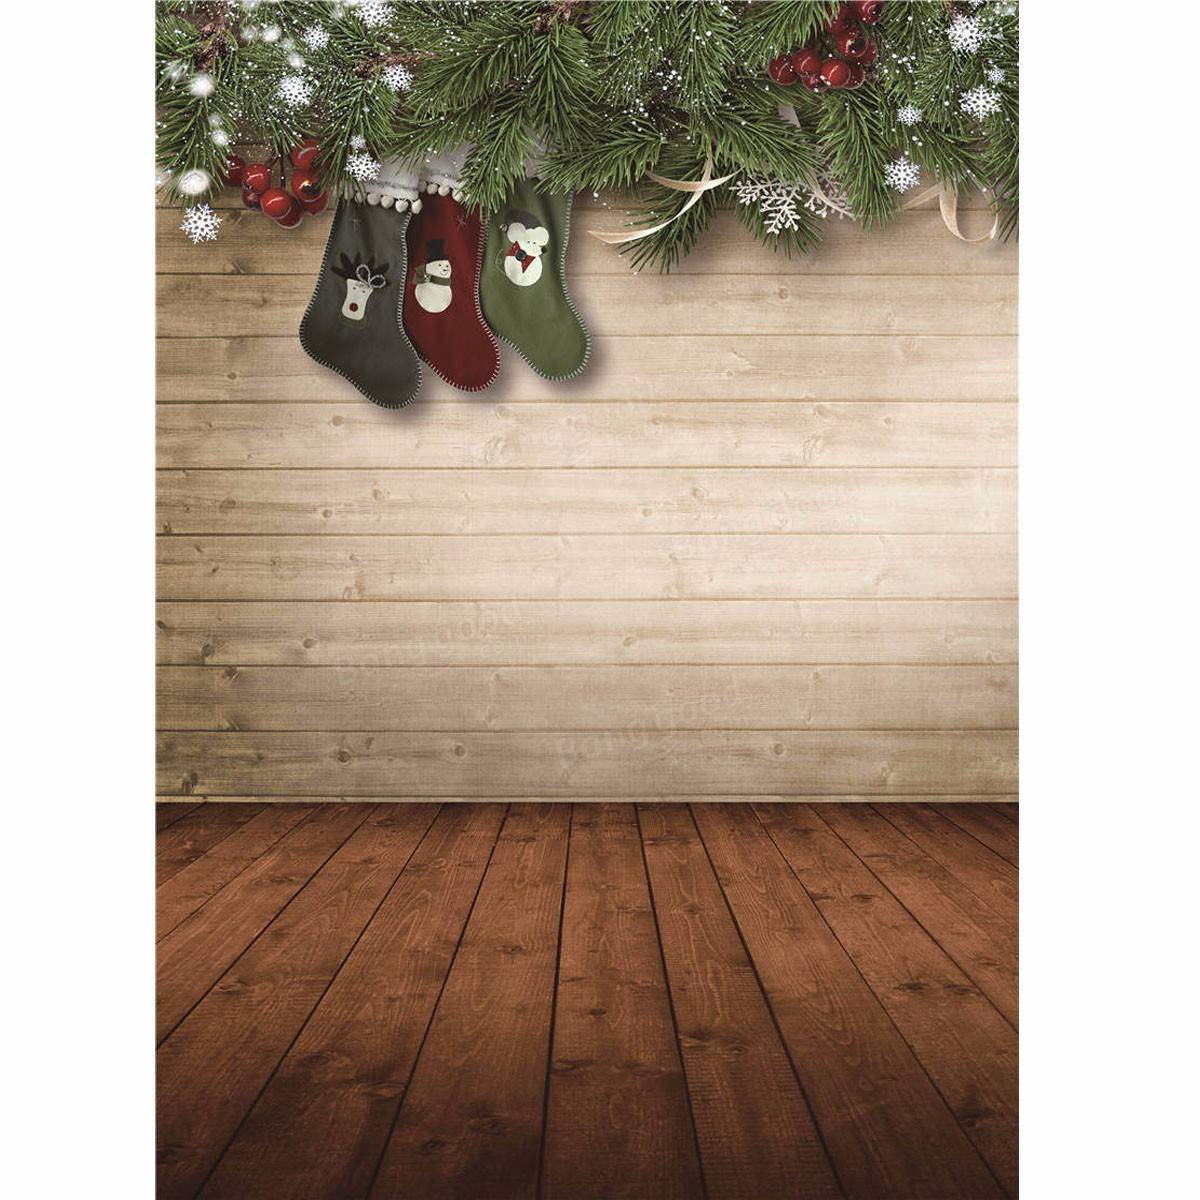 5x7ft christmas socks vinyl background backdrop. Black Bedroom Furniture Sets. Home Design Ideas